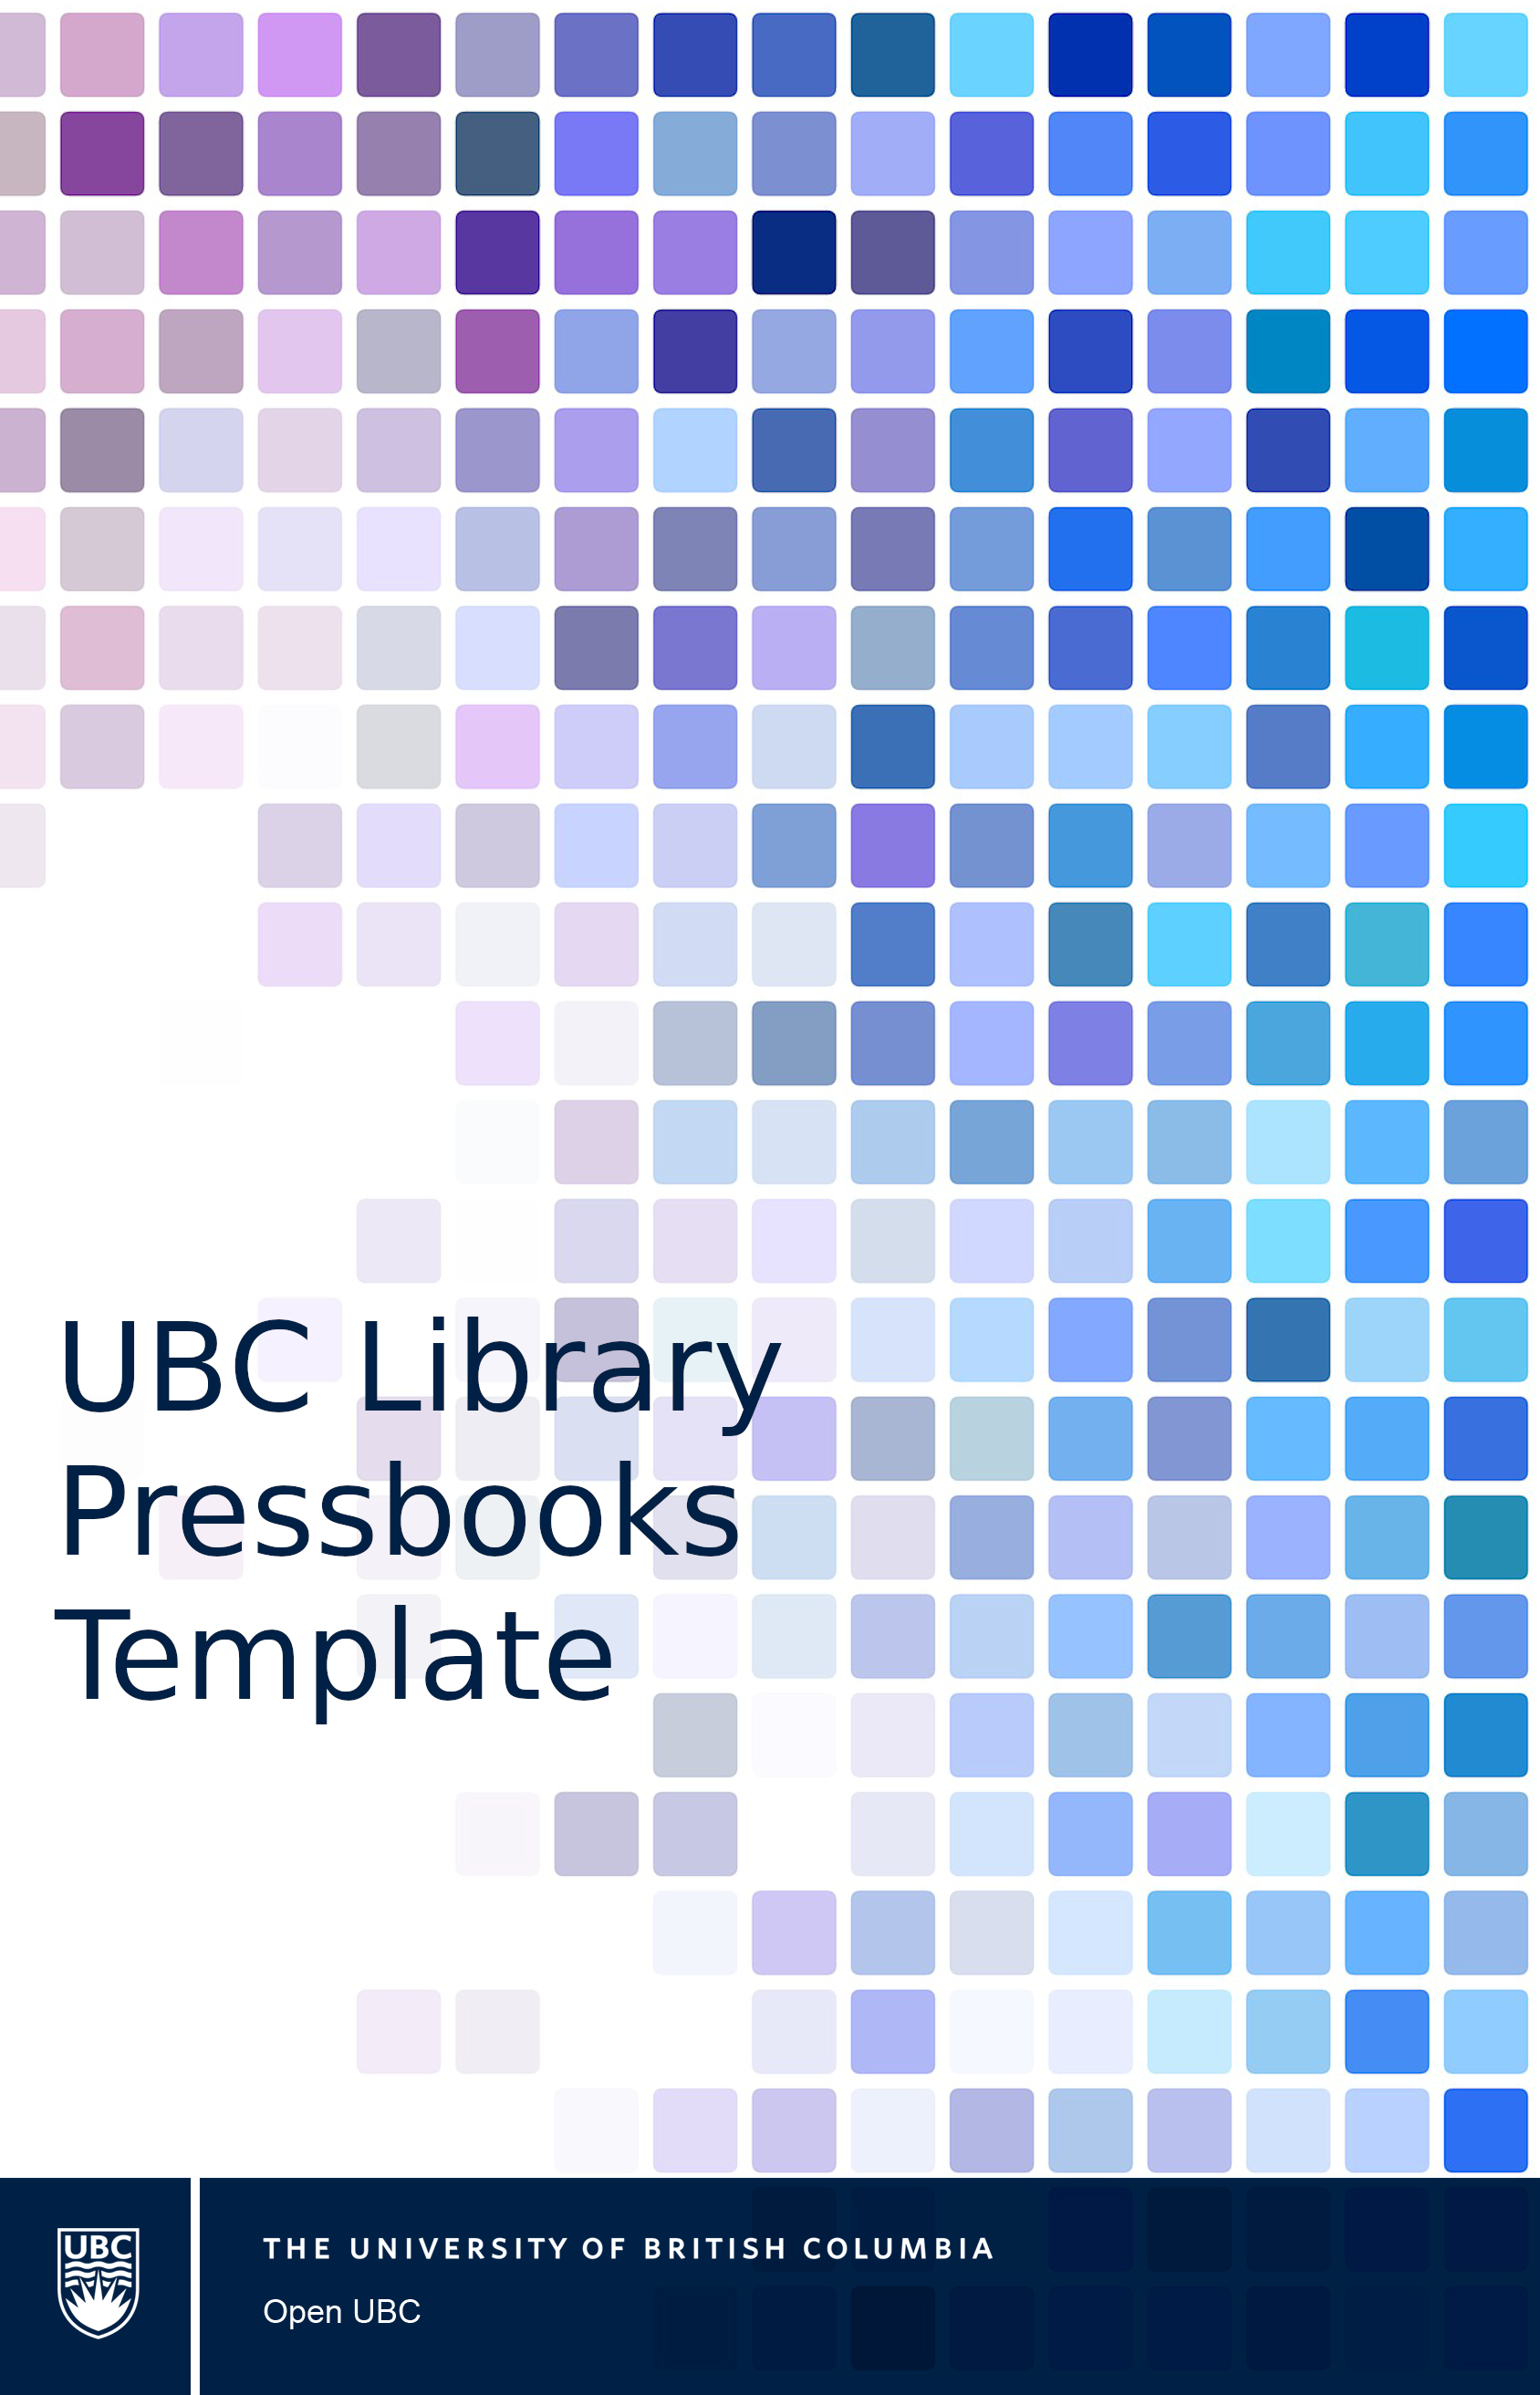 Cover image for UBC Library Pressbooks Template